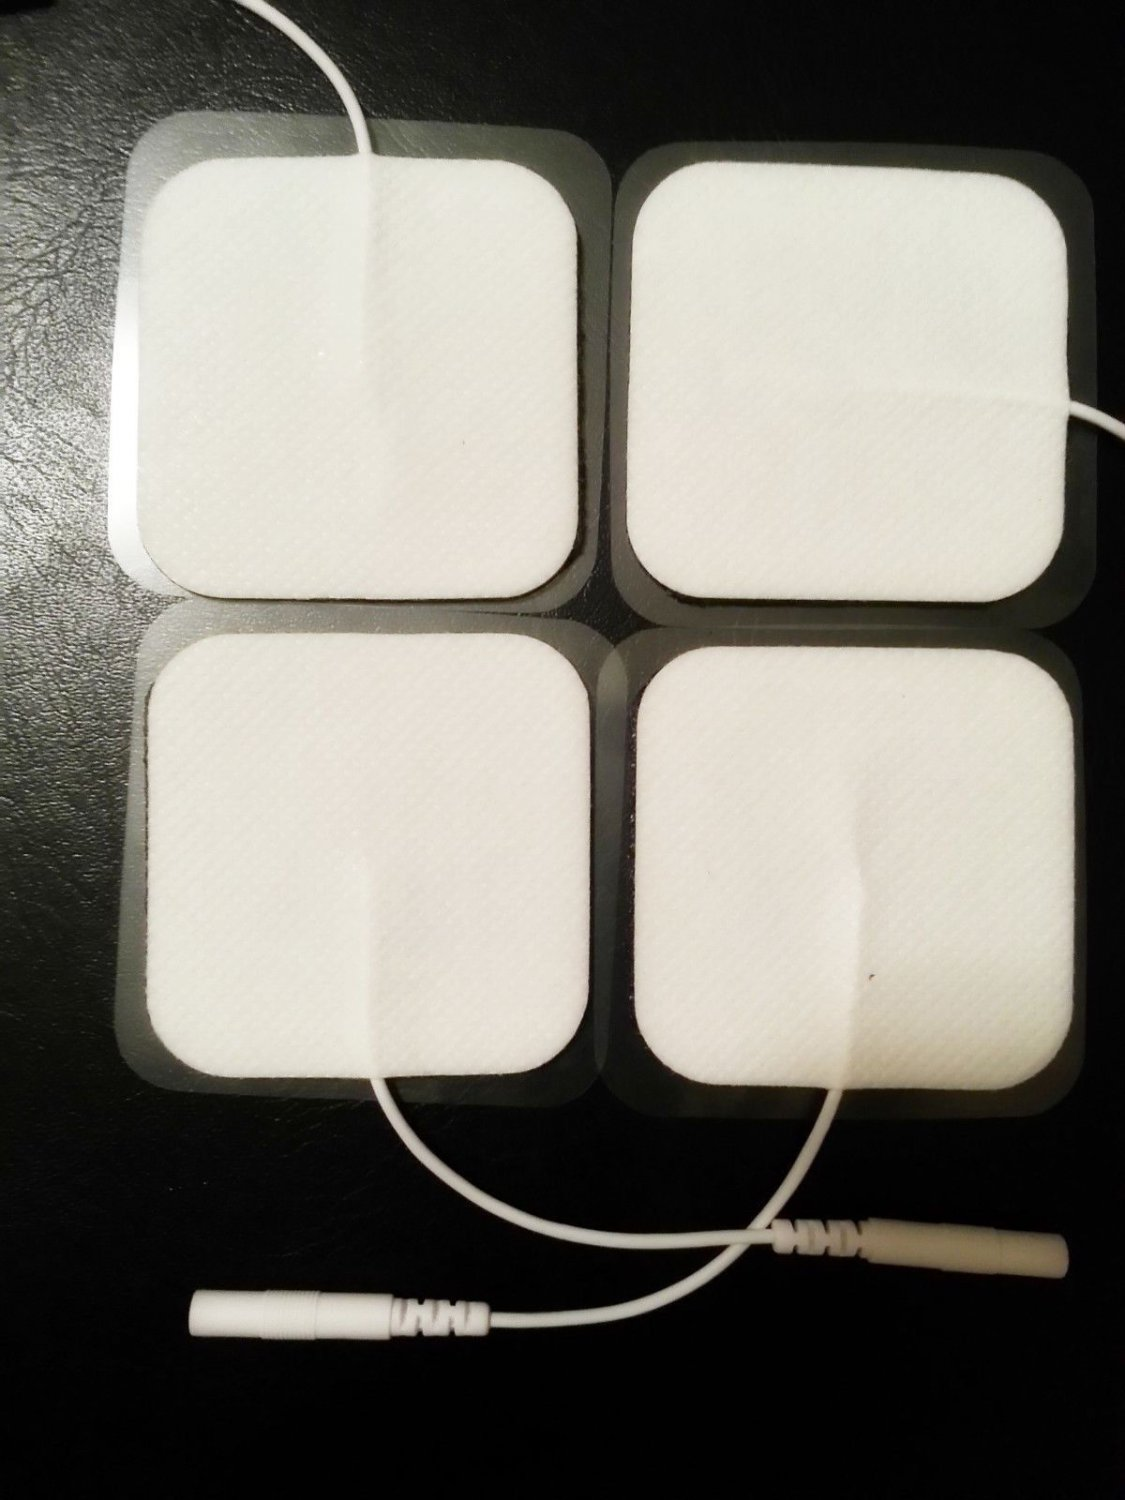 8 pc Refill Electrode Massage Pads for Accurelief ACRL-2000 ACRL-3000 ACRL-5500